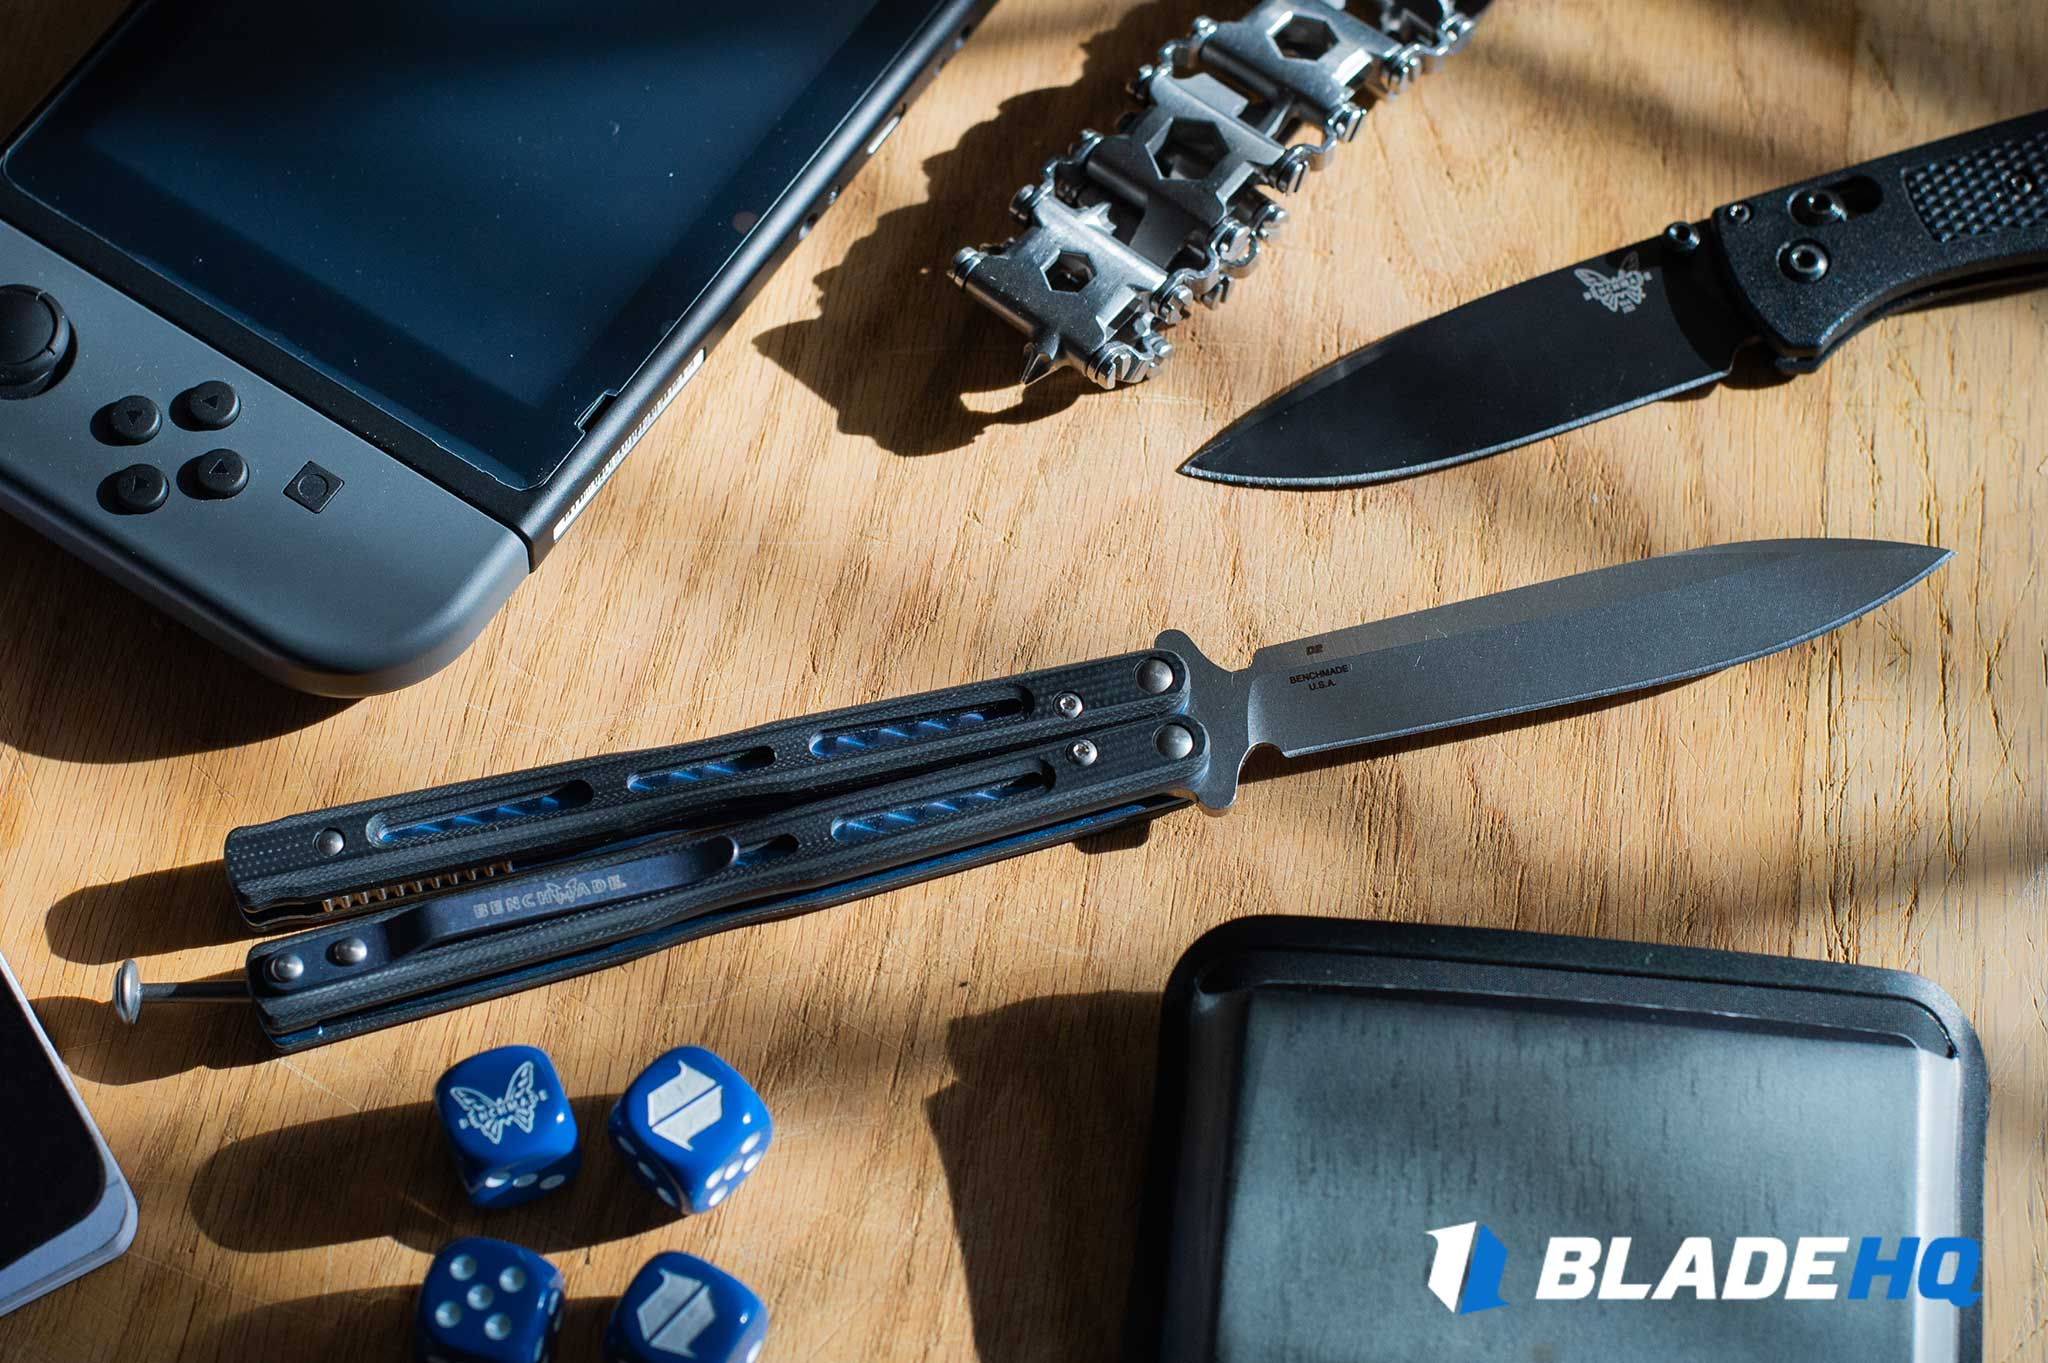 Benchmade 51 Morpho Knife Materials